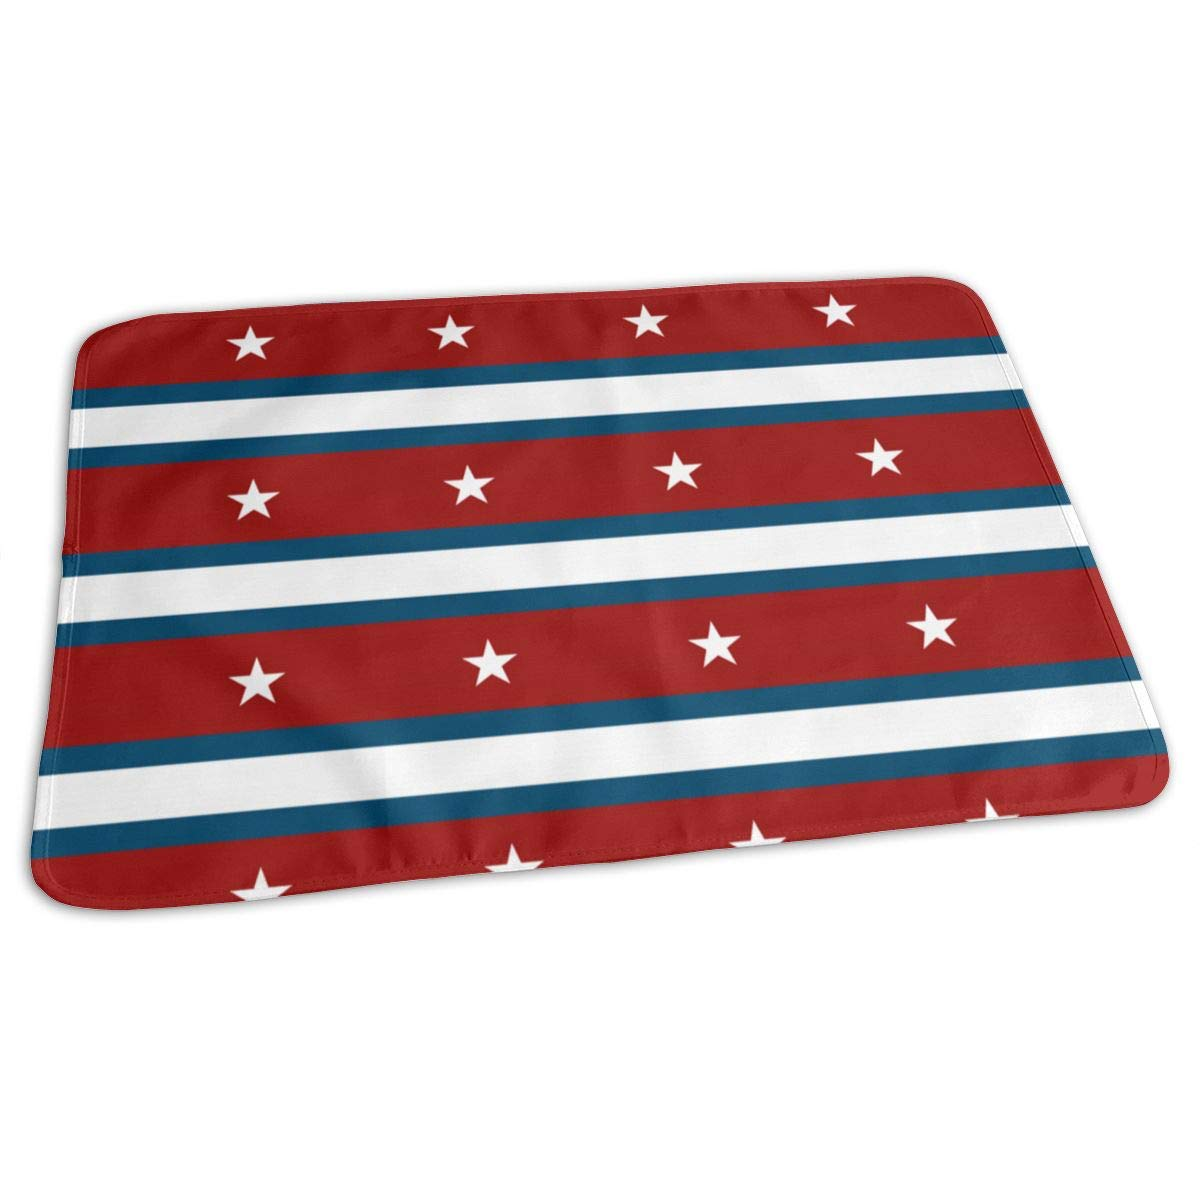 Osvbs Lovely Baby Reusable Waterproof Portable American Flag Stripe Pentagon Changing Pad Home Travel 27.5''x19.7'' by Osvbs